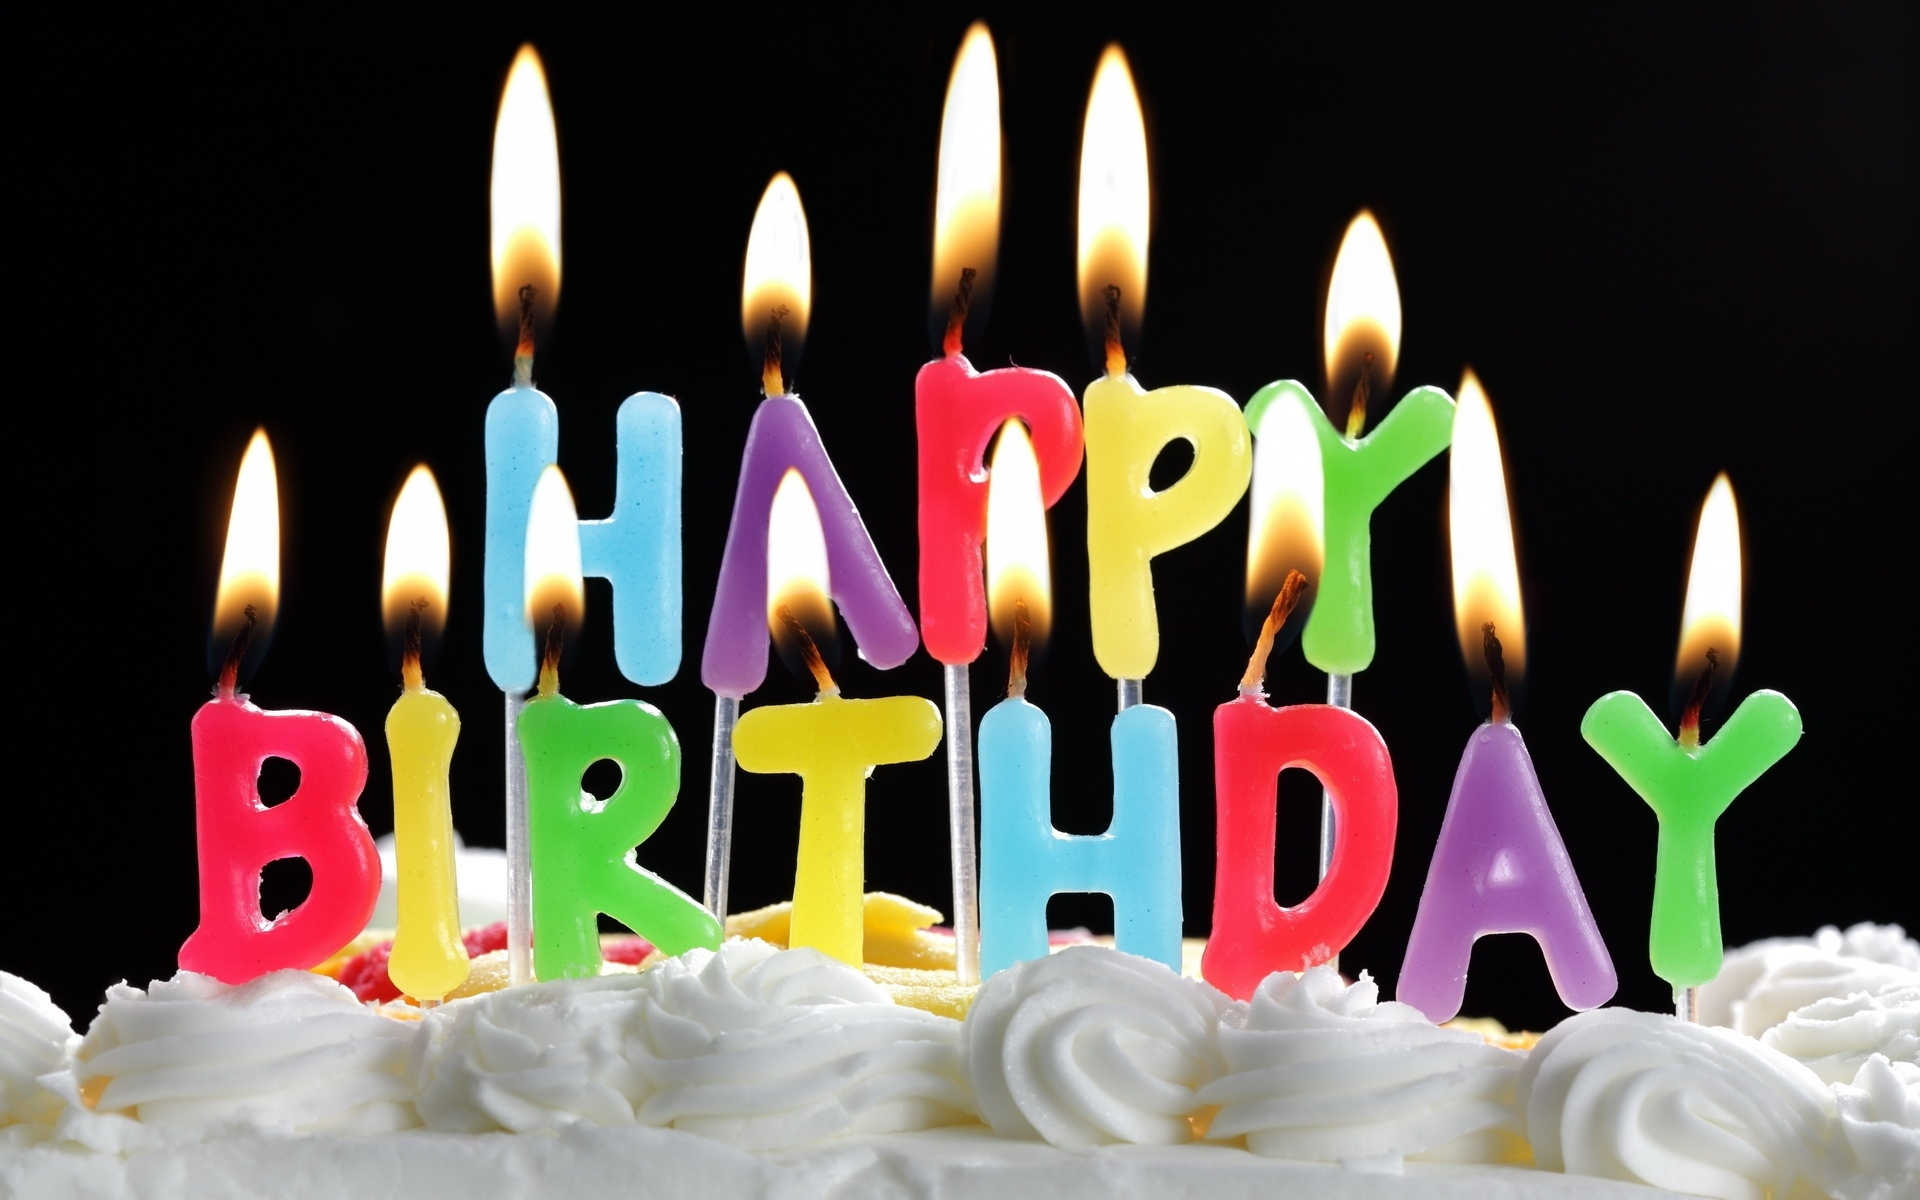 animated birthday wallpaper ; animated-birthday-wallpapers-desktop-15-i-delicious-26-animated-birthday-cake-with-candles